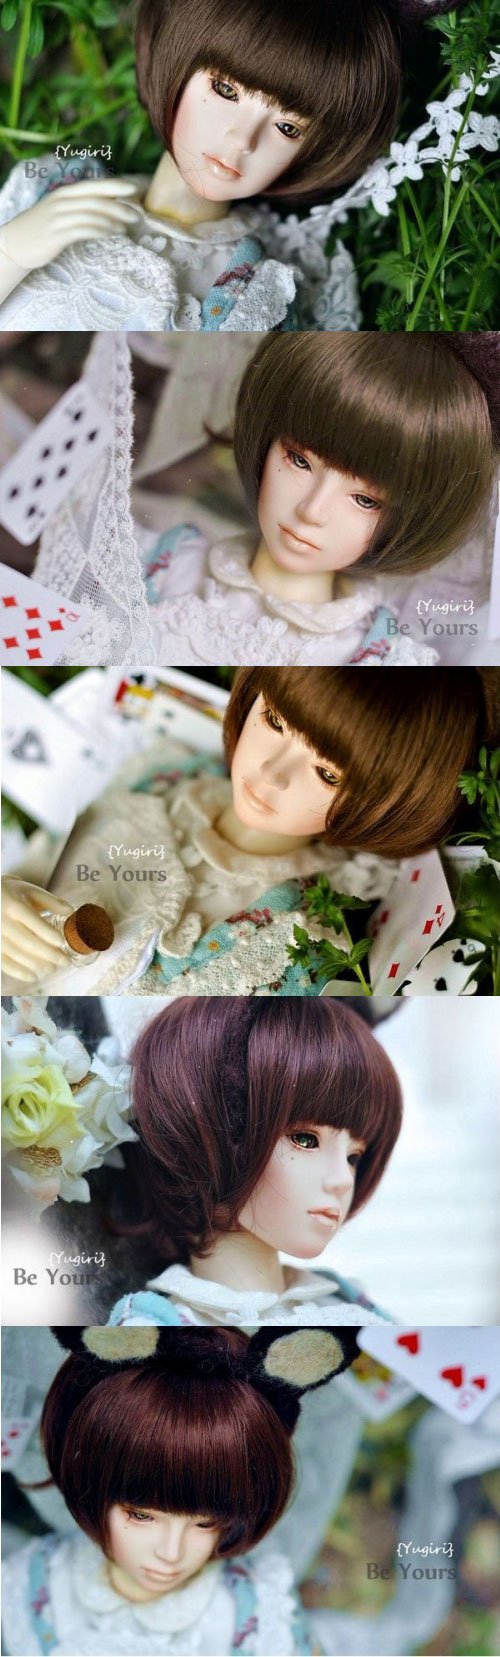 BJD Yugirl 60.5cm Girl Ball-jointed doll